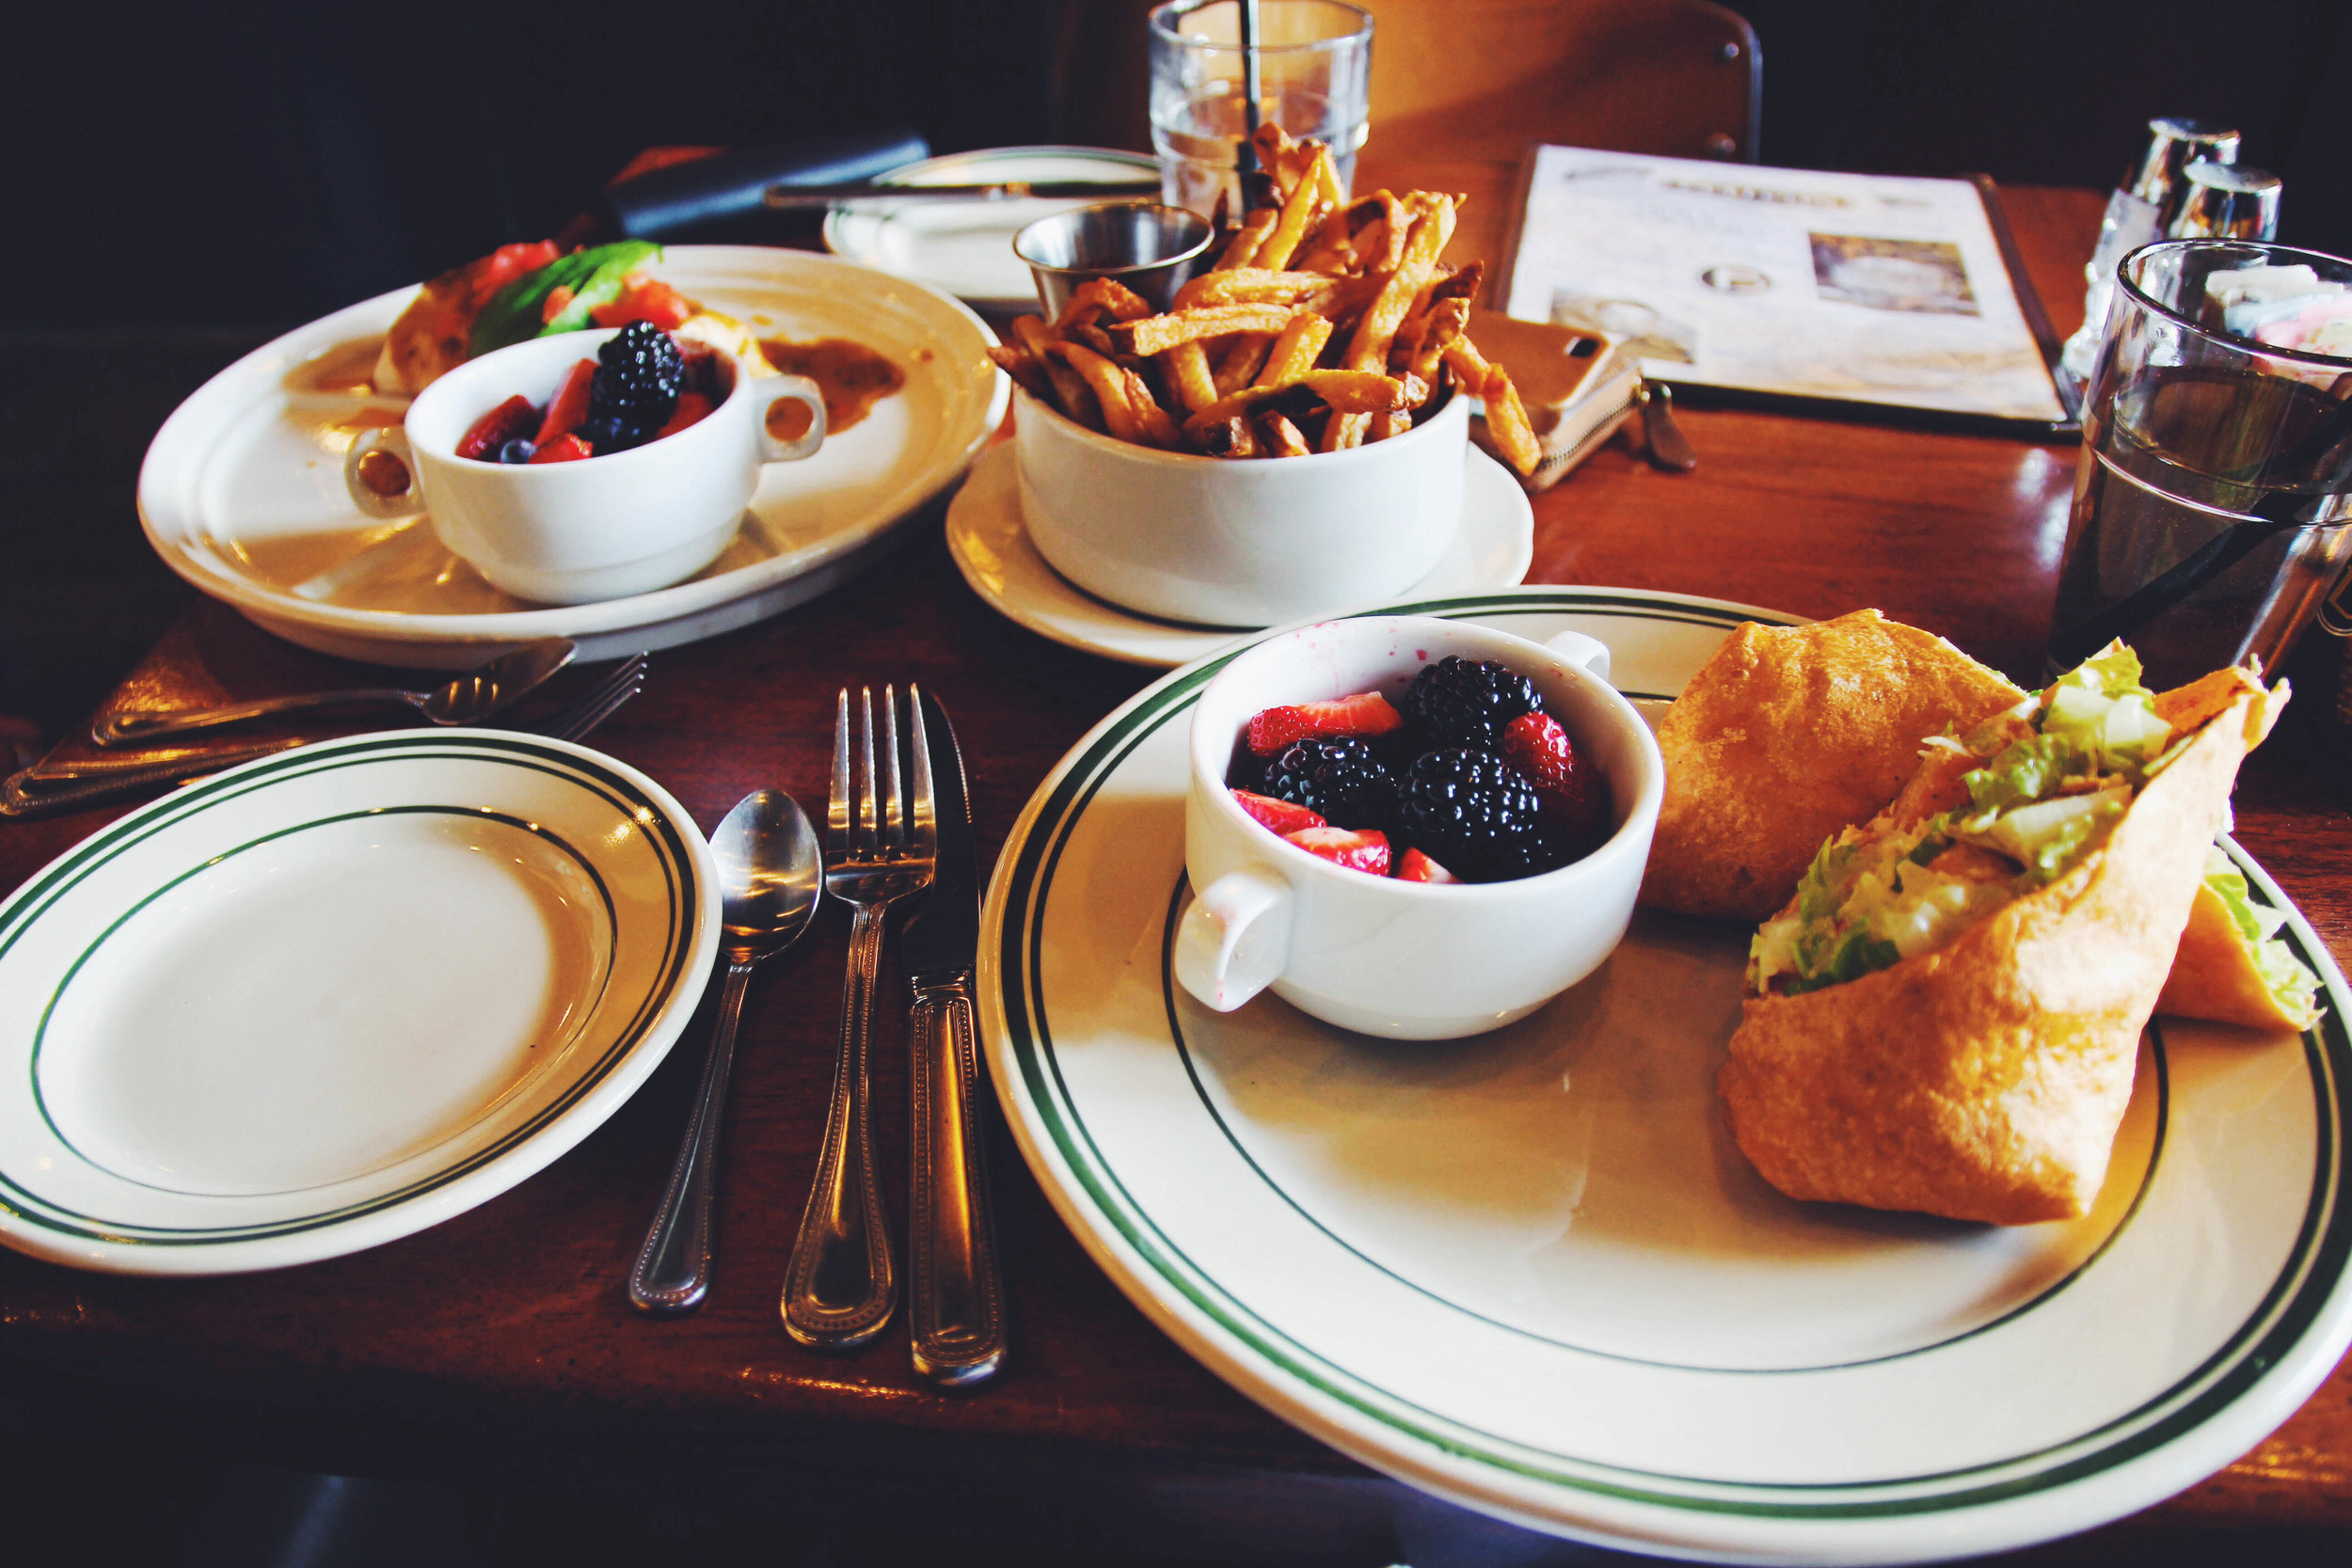 {Lunch at Ted's Bulletin}